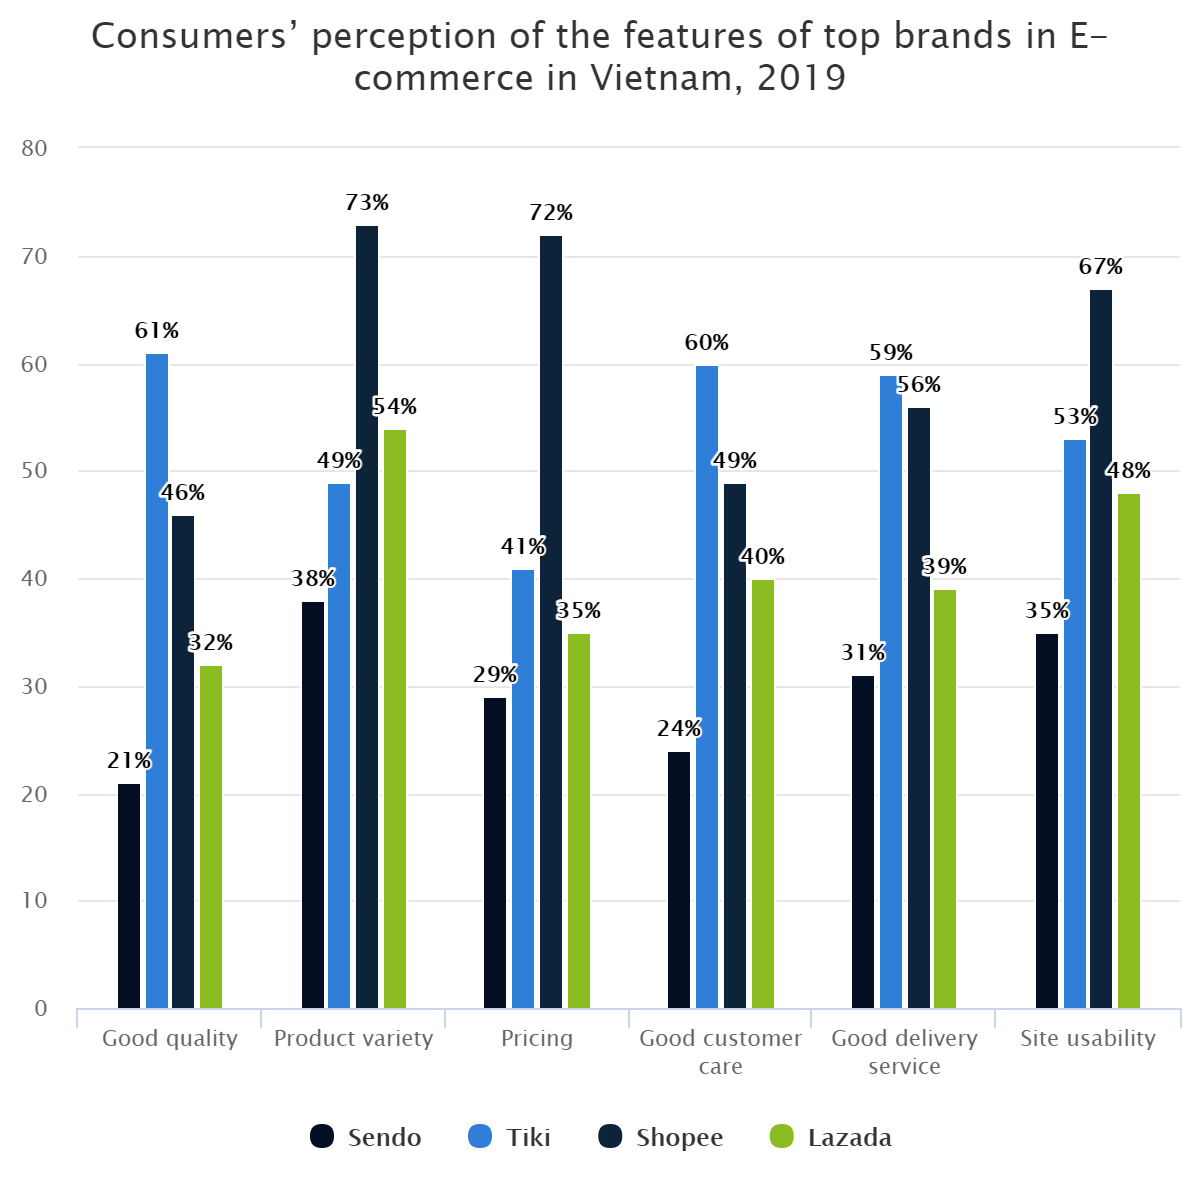 Consumers' perception of the features of top brands in E-commerce in Vietnam, 2019